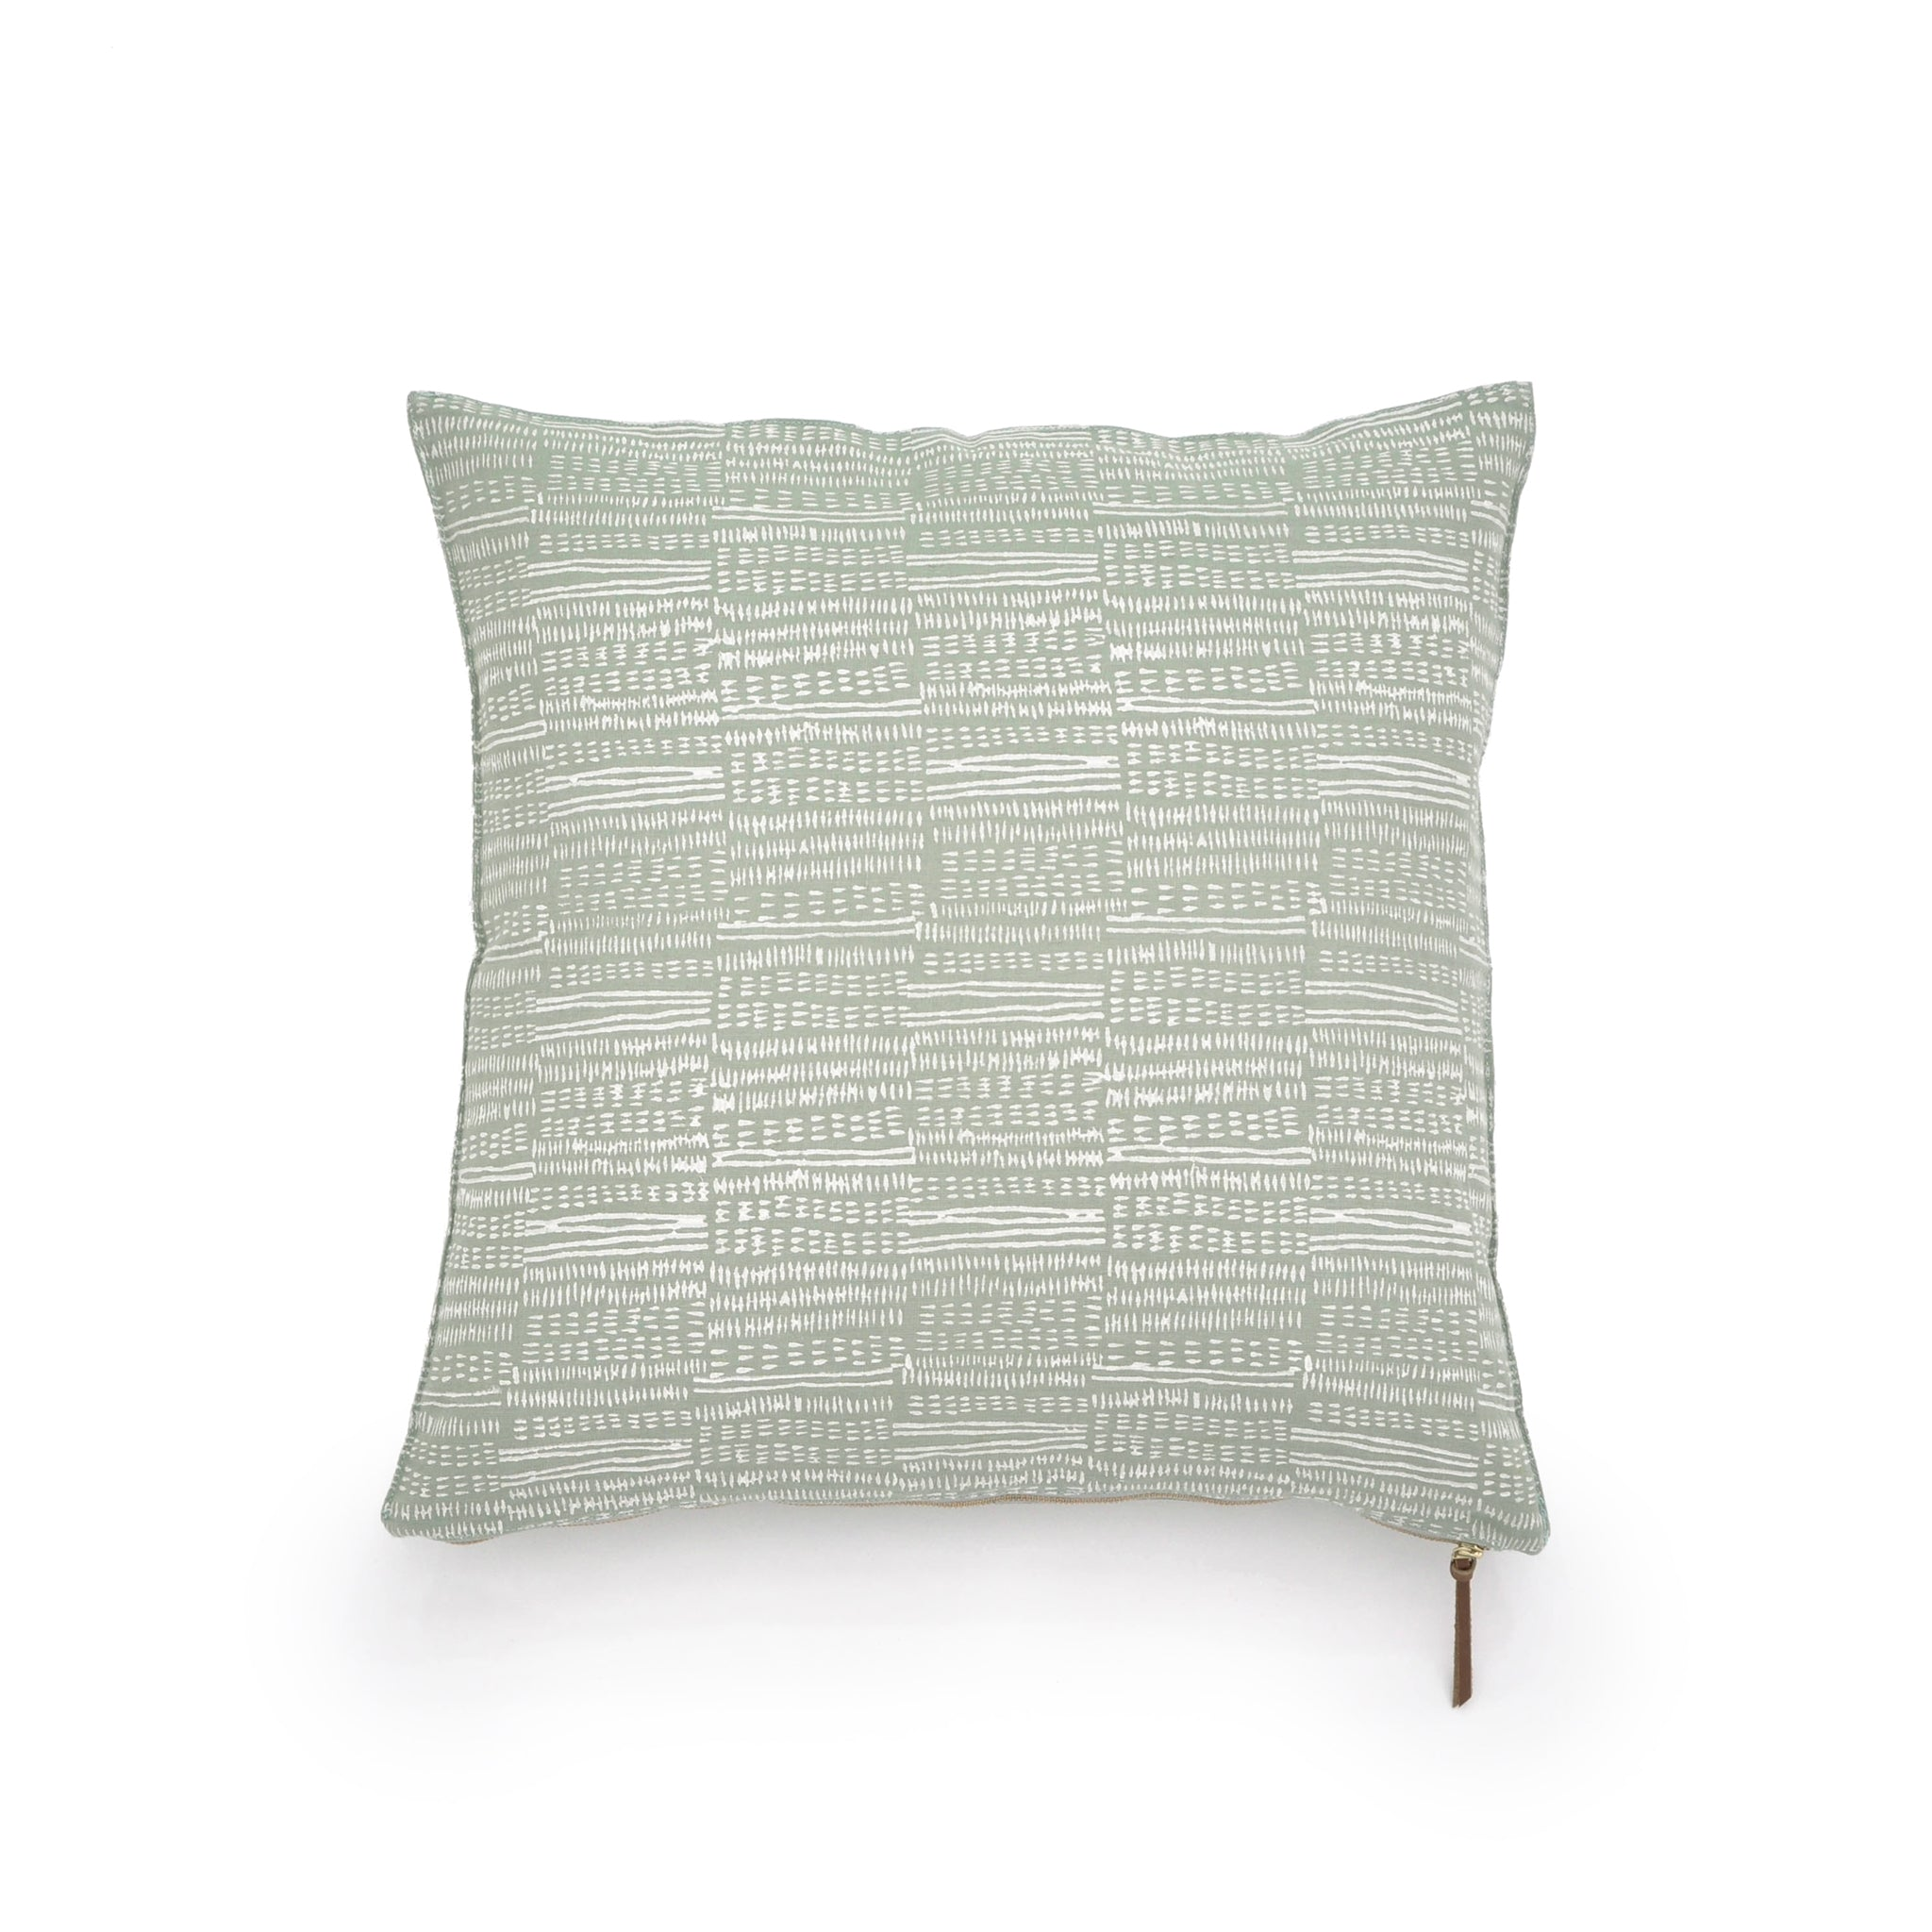 Common Texture square pure linen cushion cover featuring a hand block printed dash pattern in cream on pastel green with contrasting gold zip and leather pull tag.